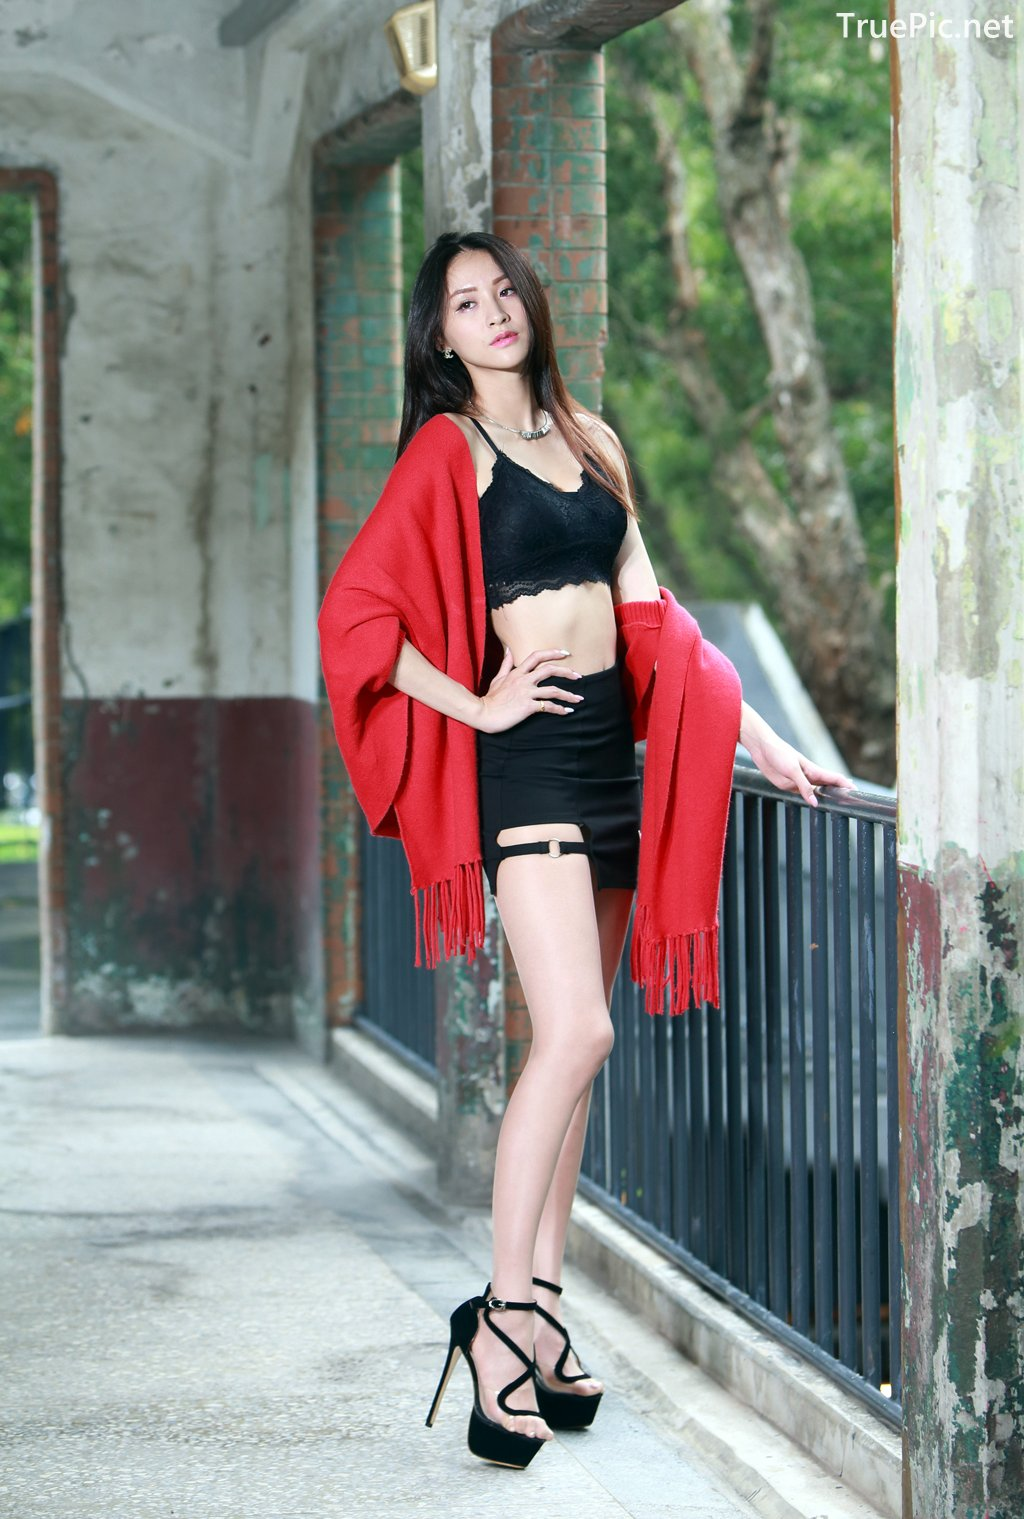 Image-Taiwanese-Beautiful-Long-Legs-Girl-雪岑Lola-Black-Sexy-Short-Pants-and-Crop-Top-Outfit-TruePic.net- Picture-6